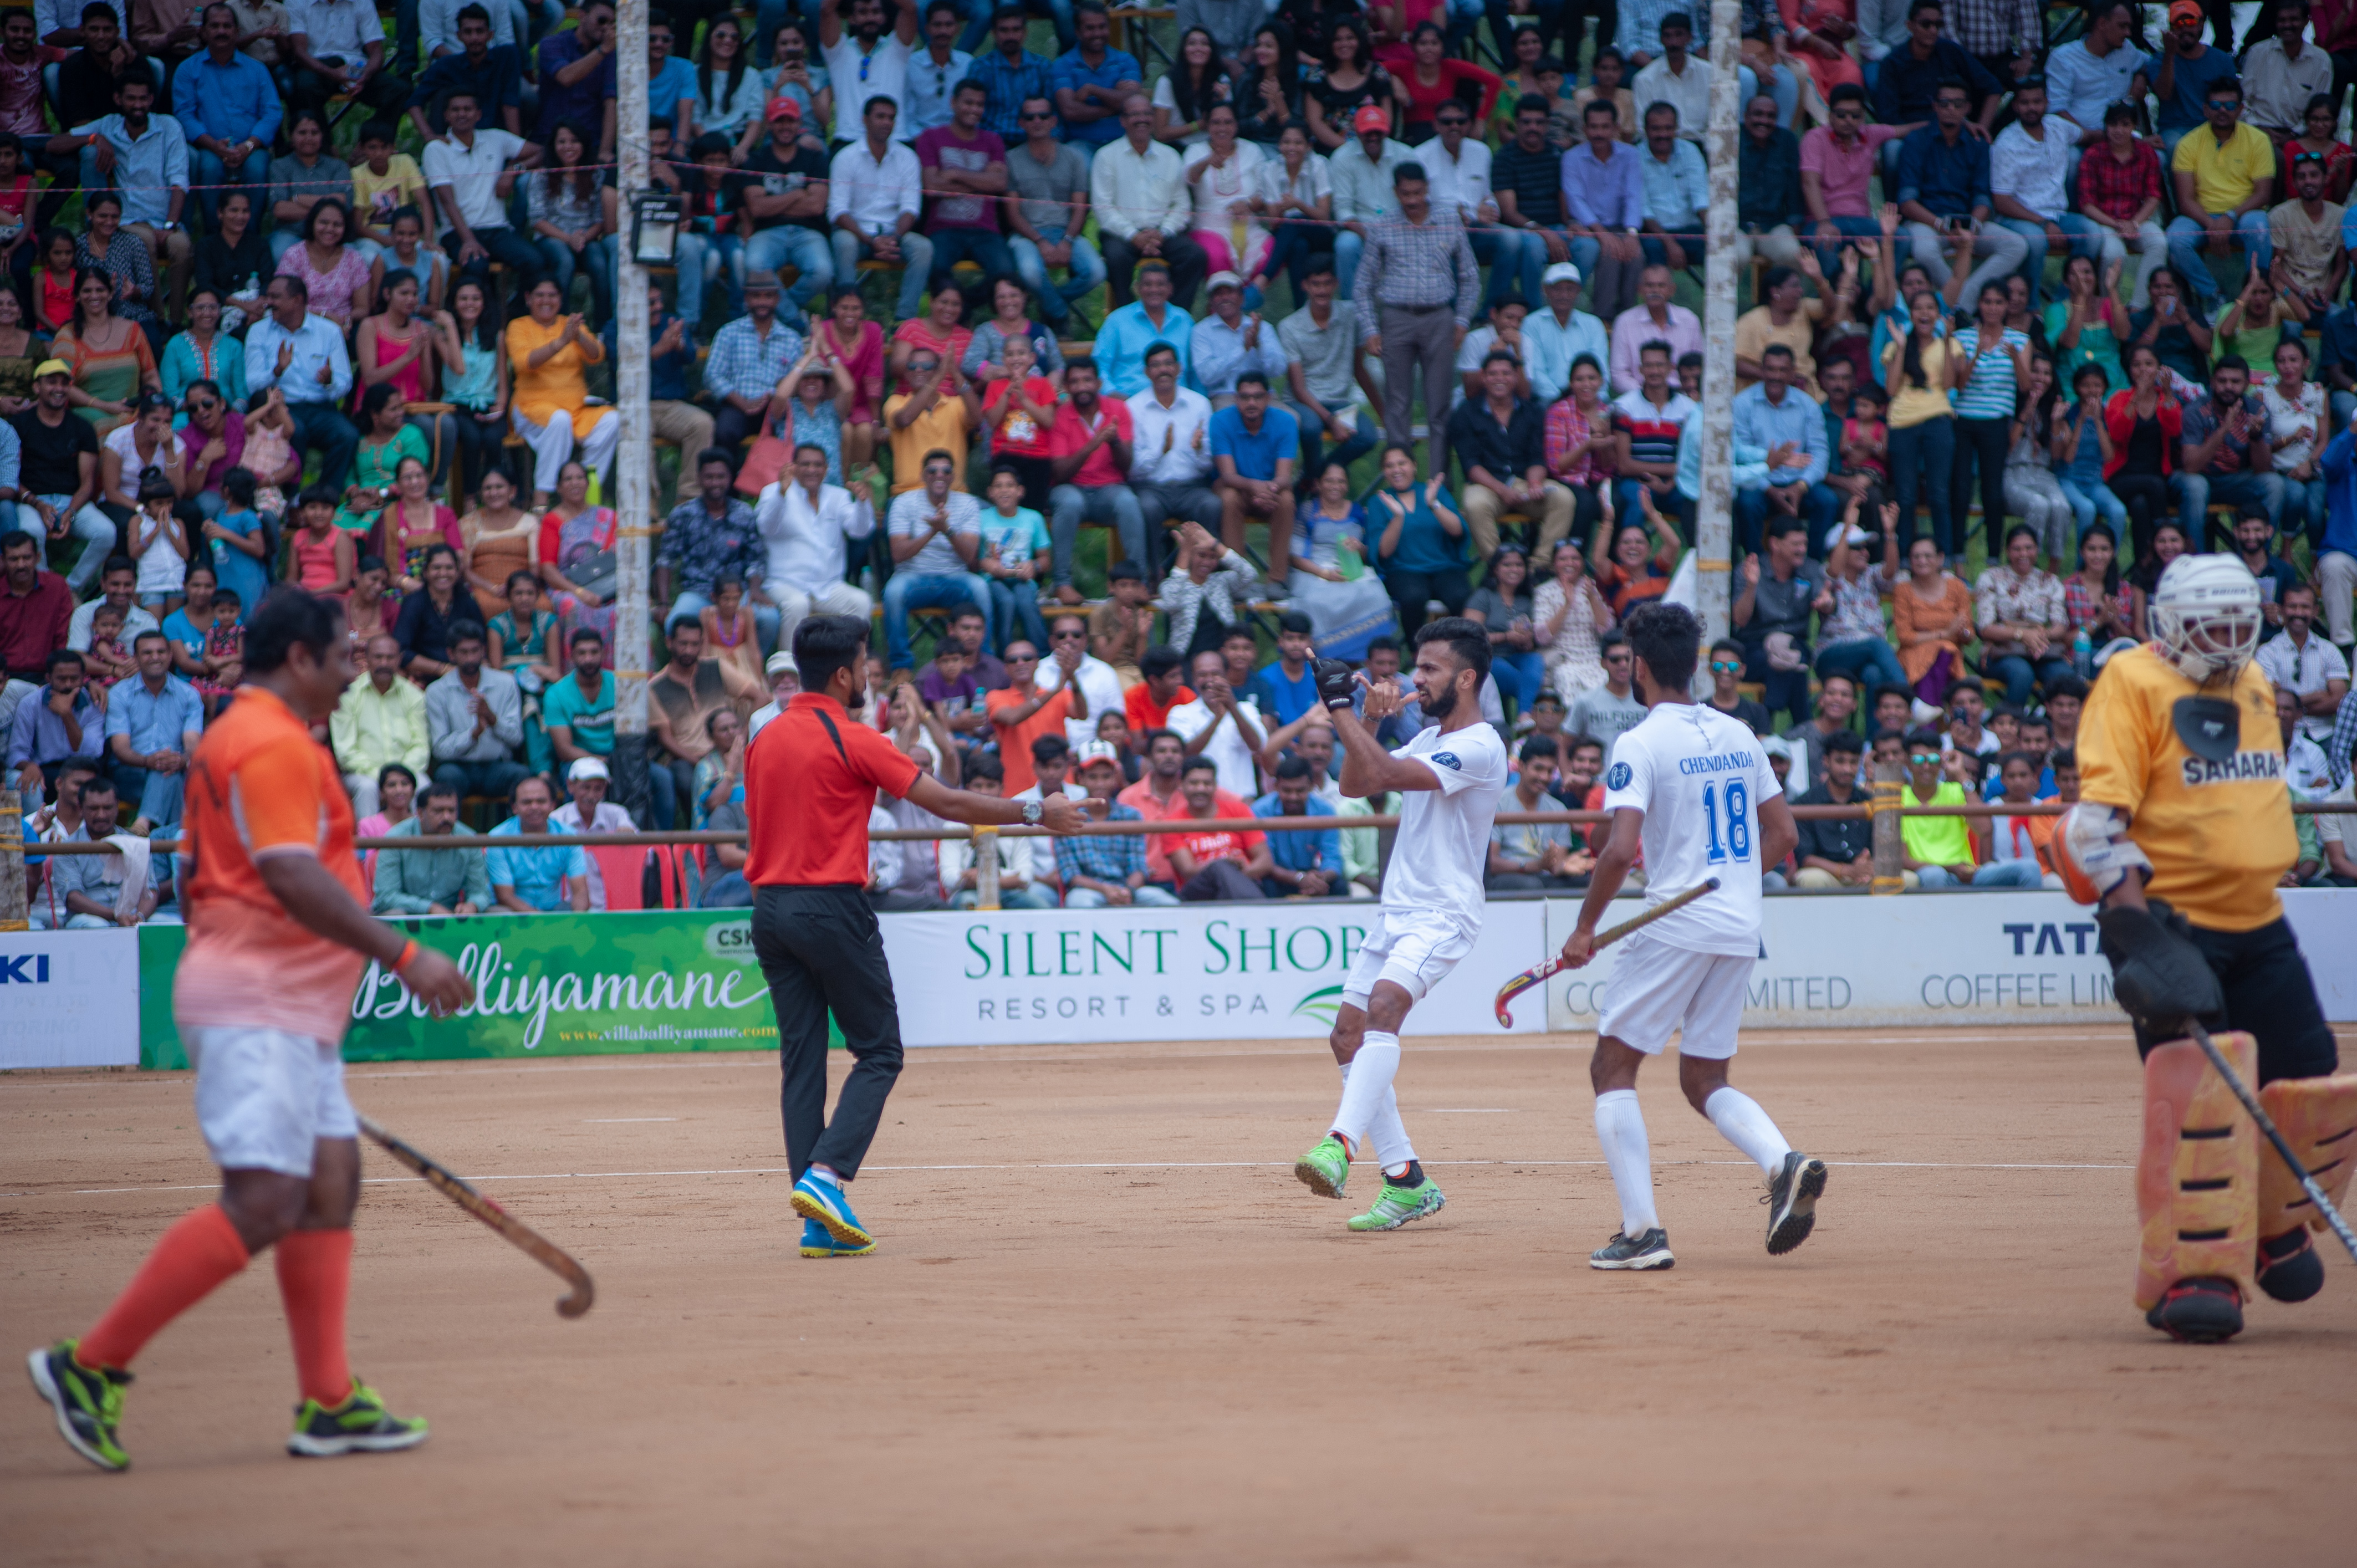 Nikkin Thimmaiah, a former India hockey player, breaks out into a dance in front of the fans after assisting Chendanda's second goal.